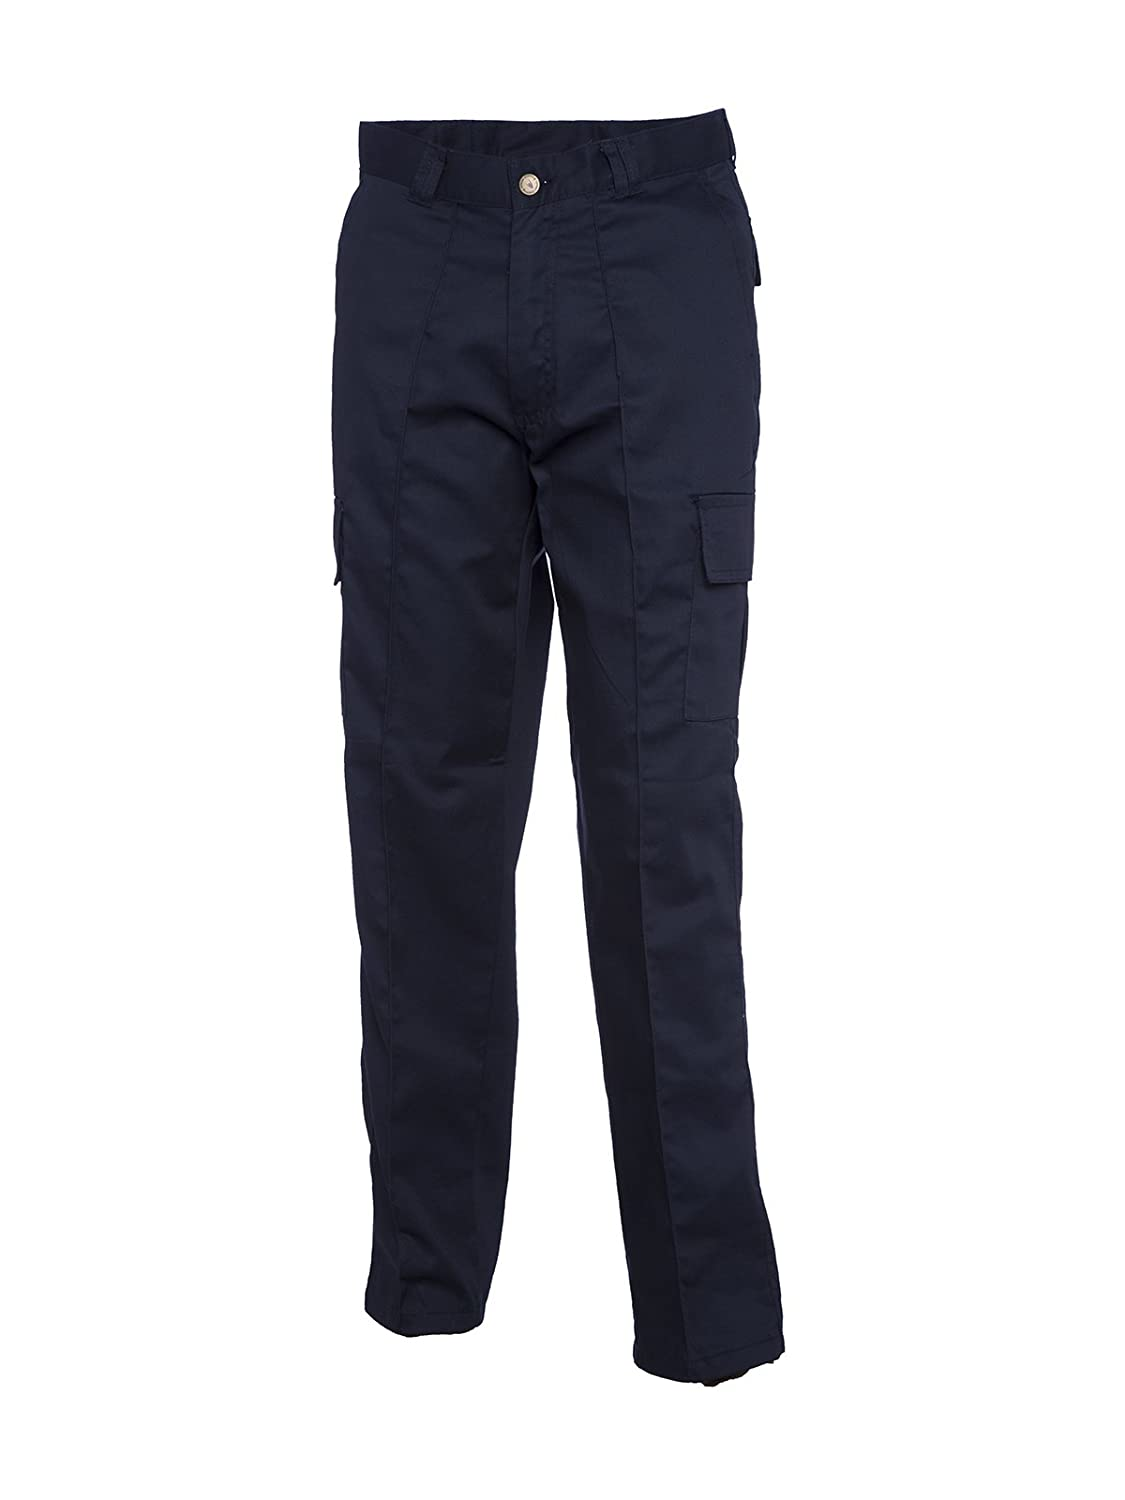 Mens Cargo Combat Work Trousers Sizes 28-52 Workwear Pants